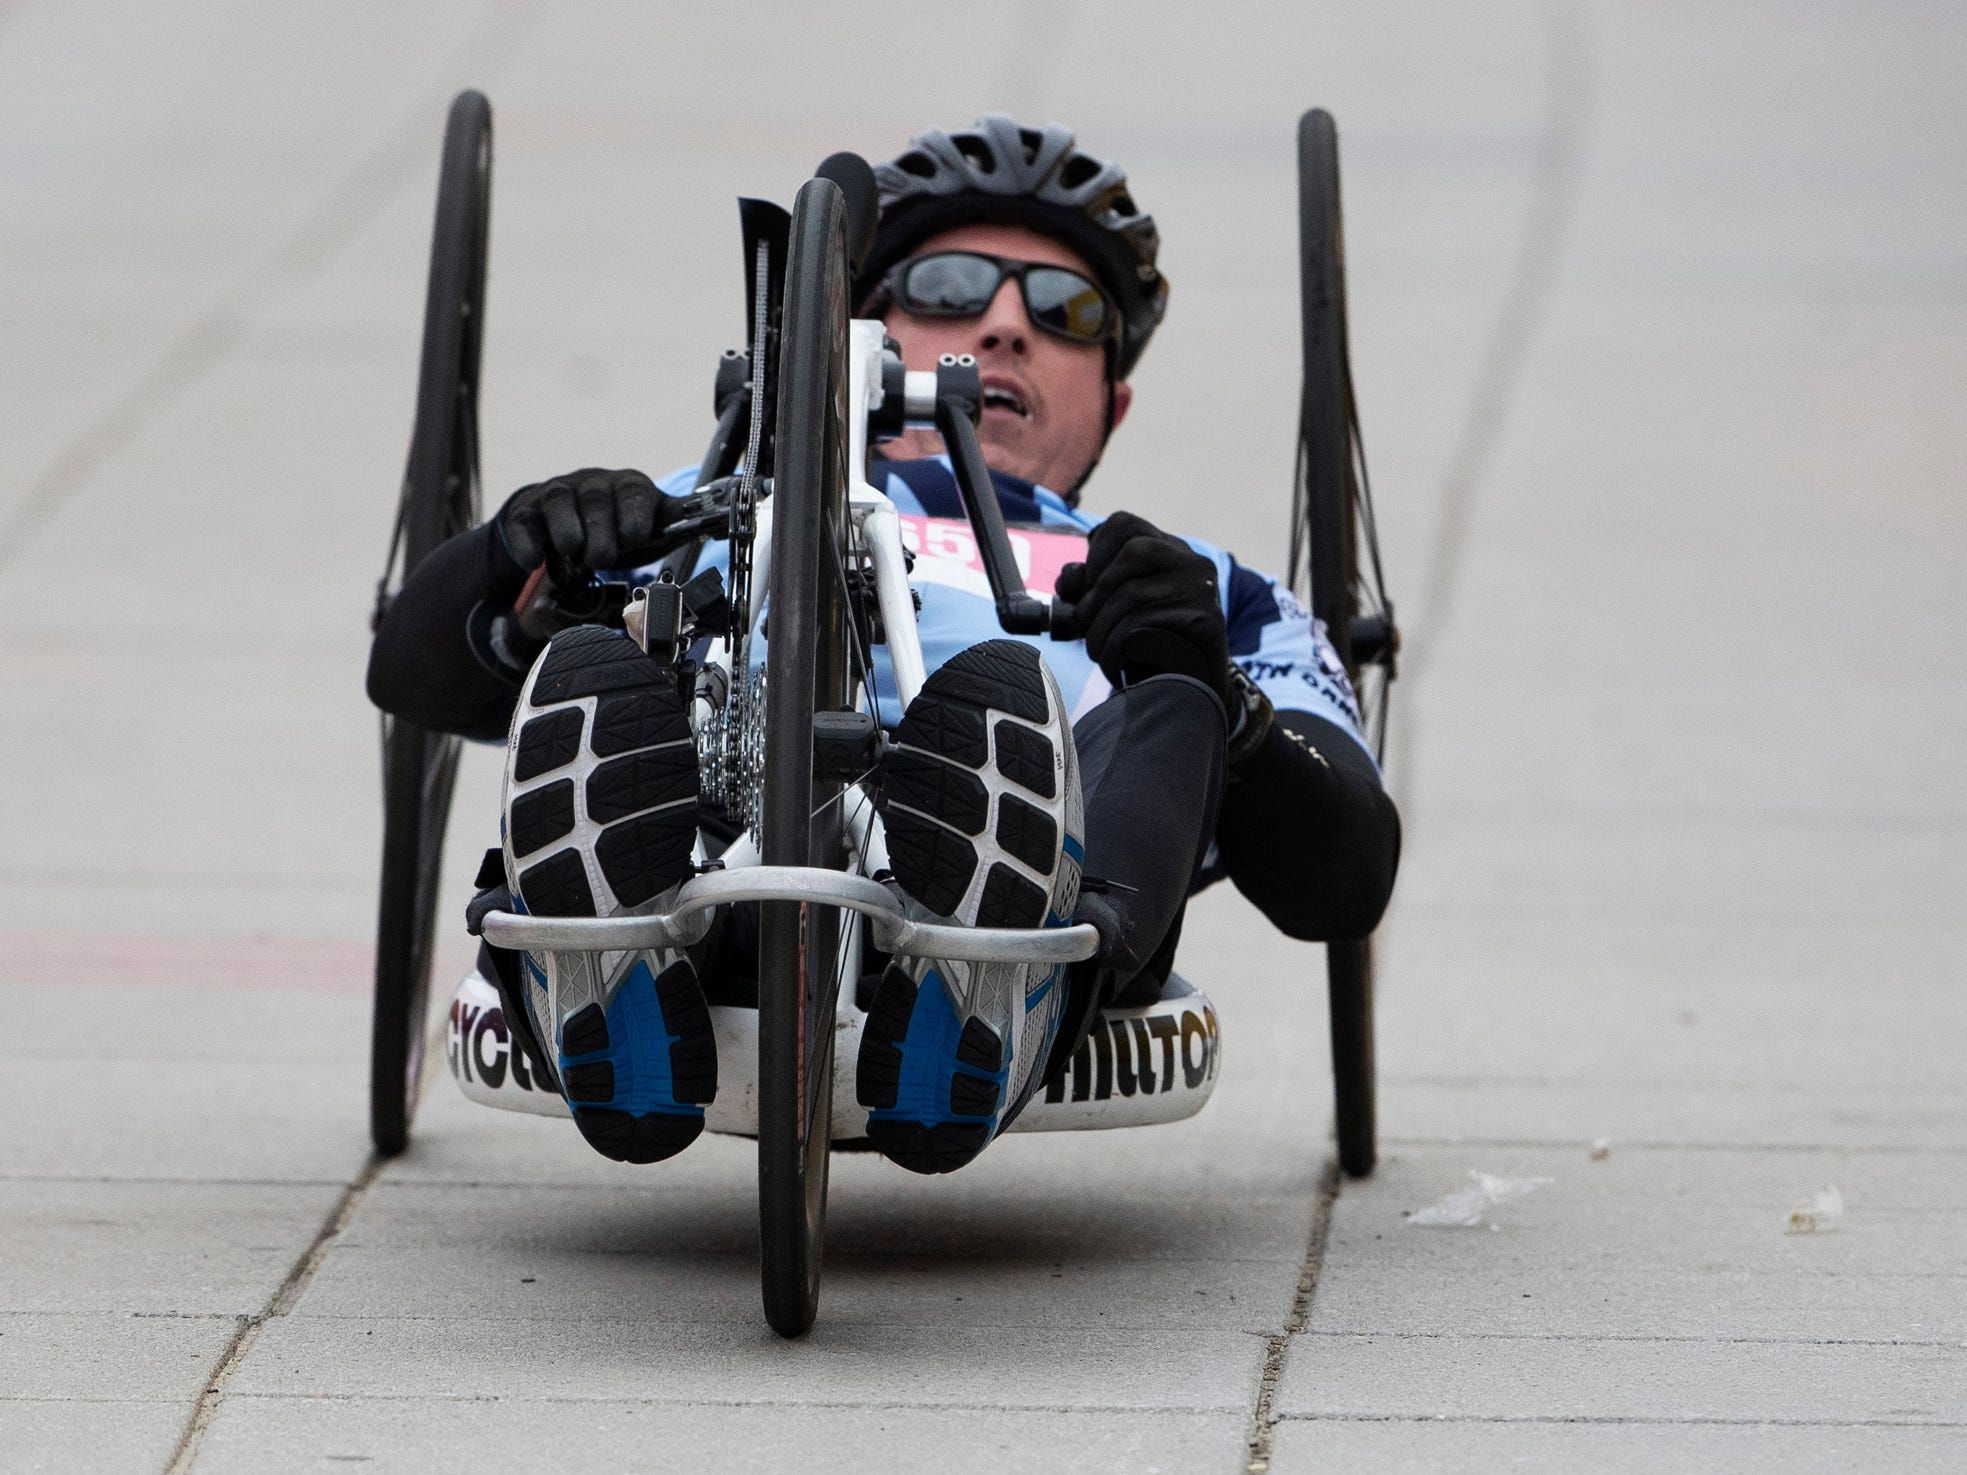 Dennis McGorty of Westfield finishes first in the wheelchair division of the 2019 Novo Nordisk New Jersey Marathon and Half Marathon which started at Monmouth Park in Oceanport and ended at Ocean Promenade in Long Branch.